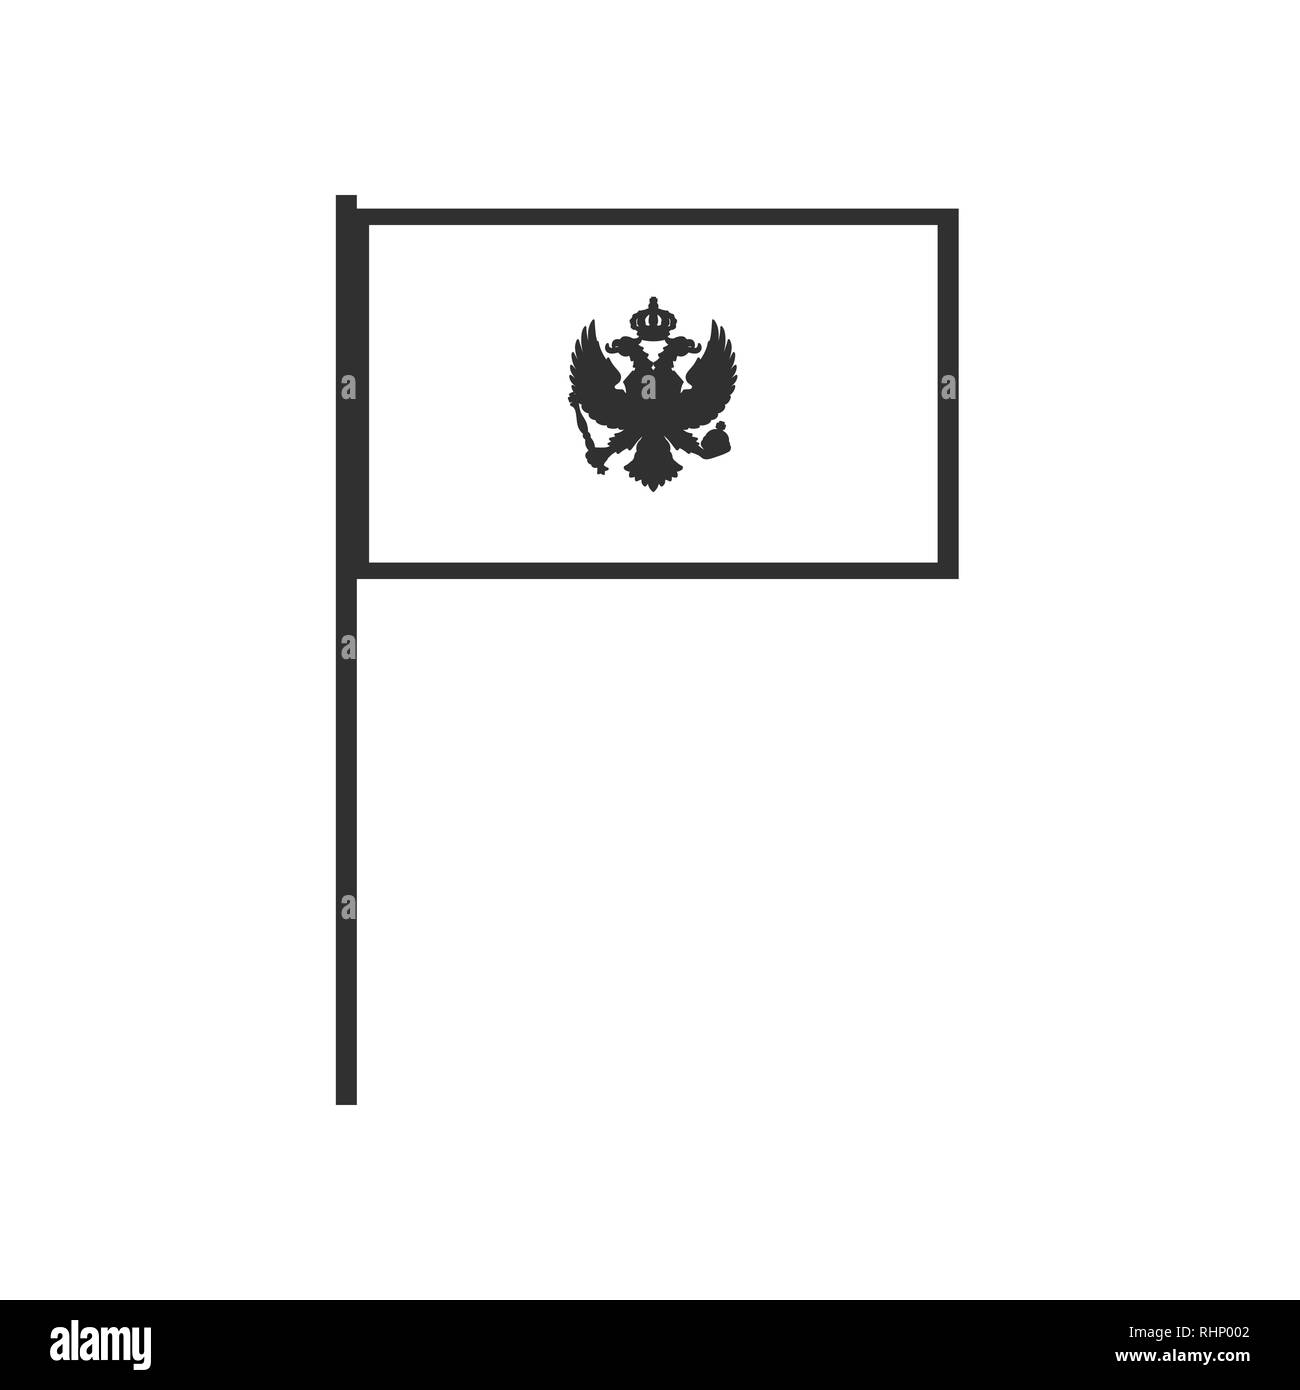 Montenegro flag icon in black outline flat design. Independence day or National day holiday concept. Stock Vector